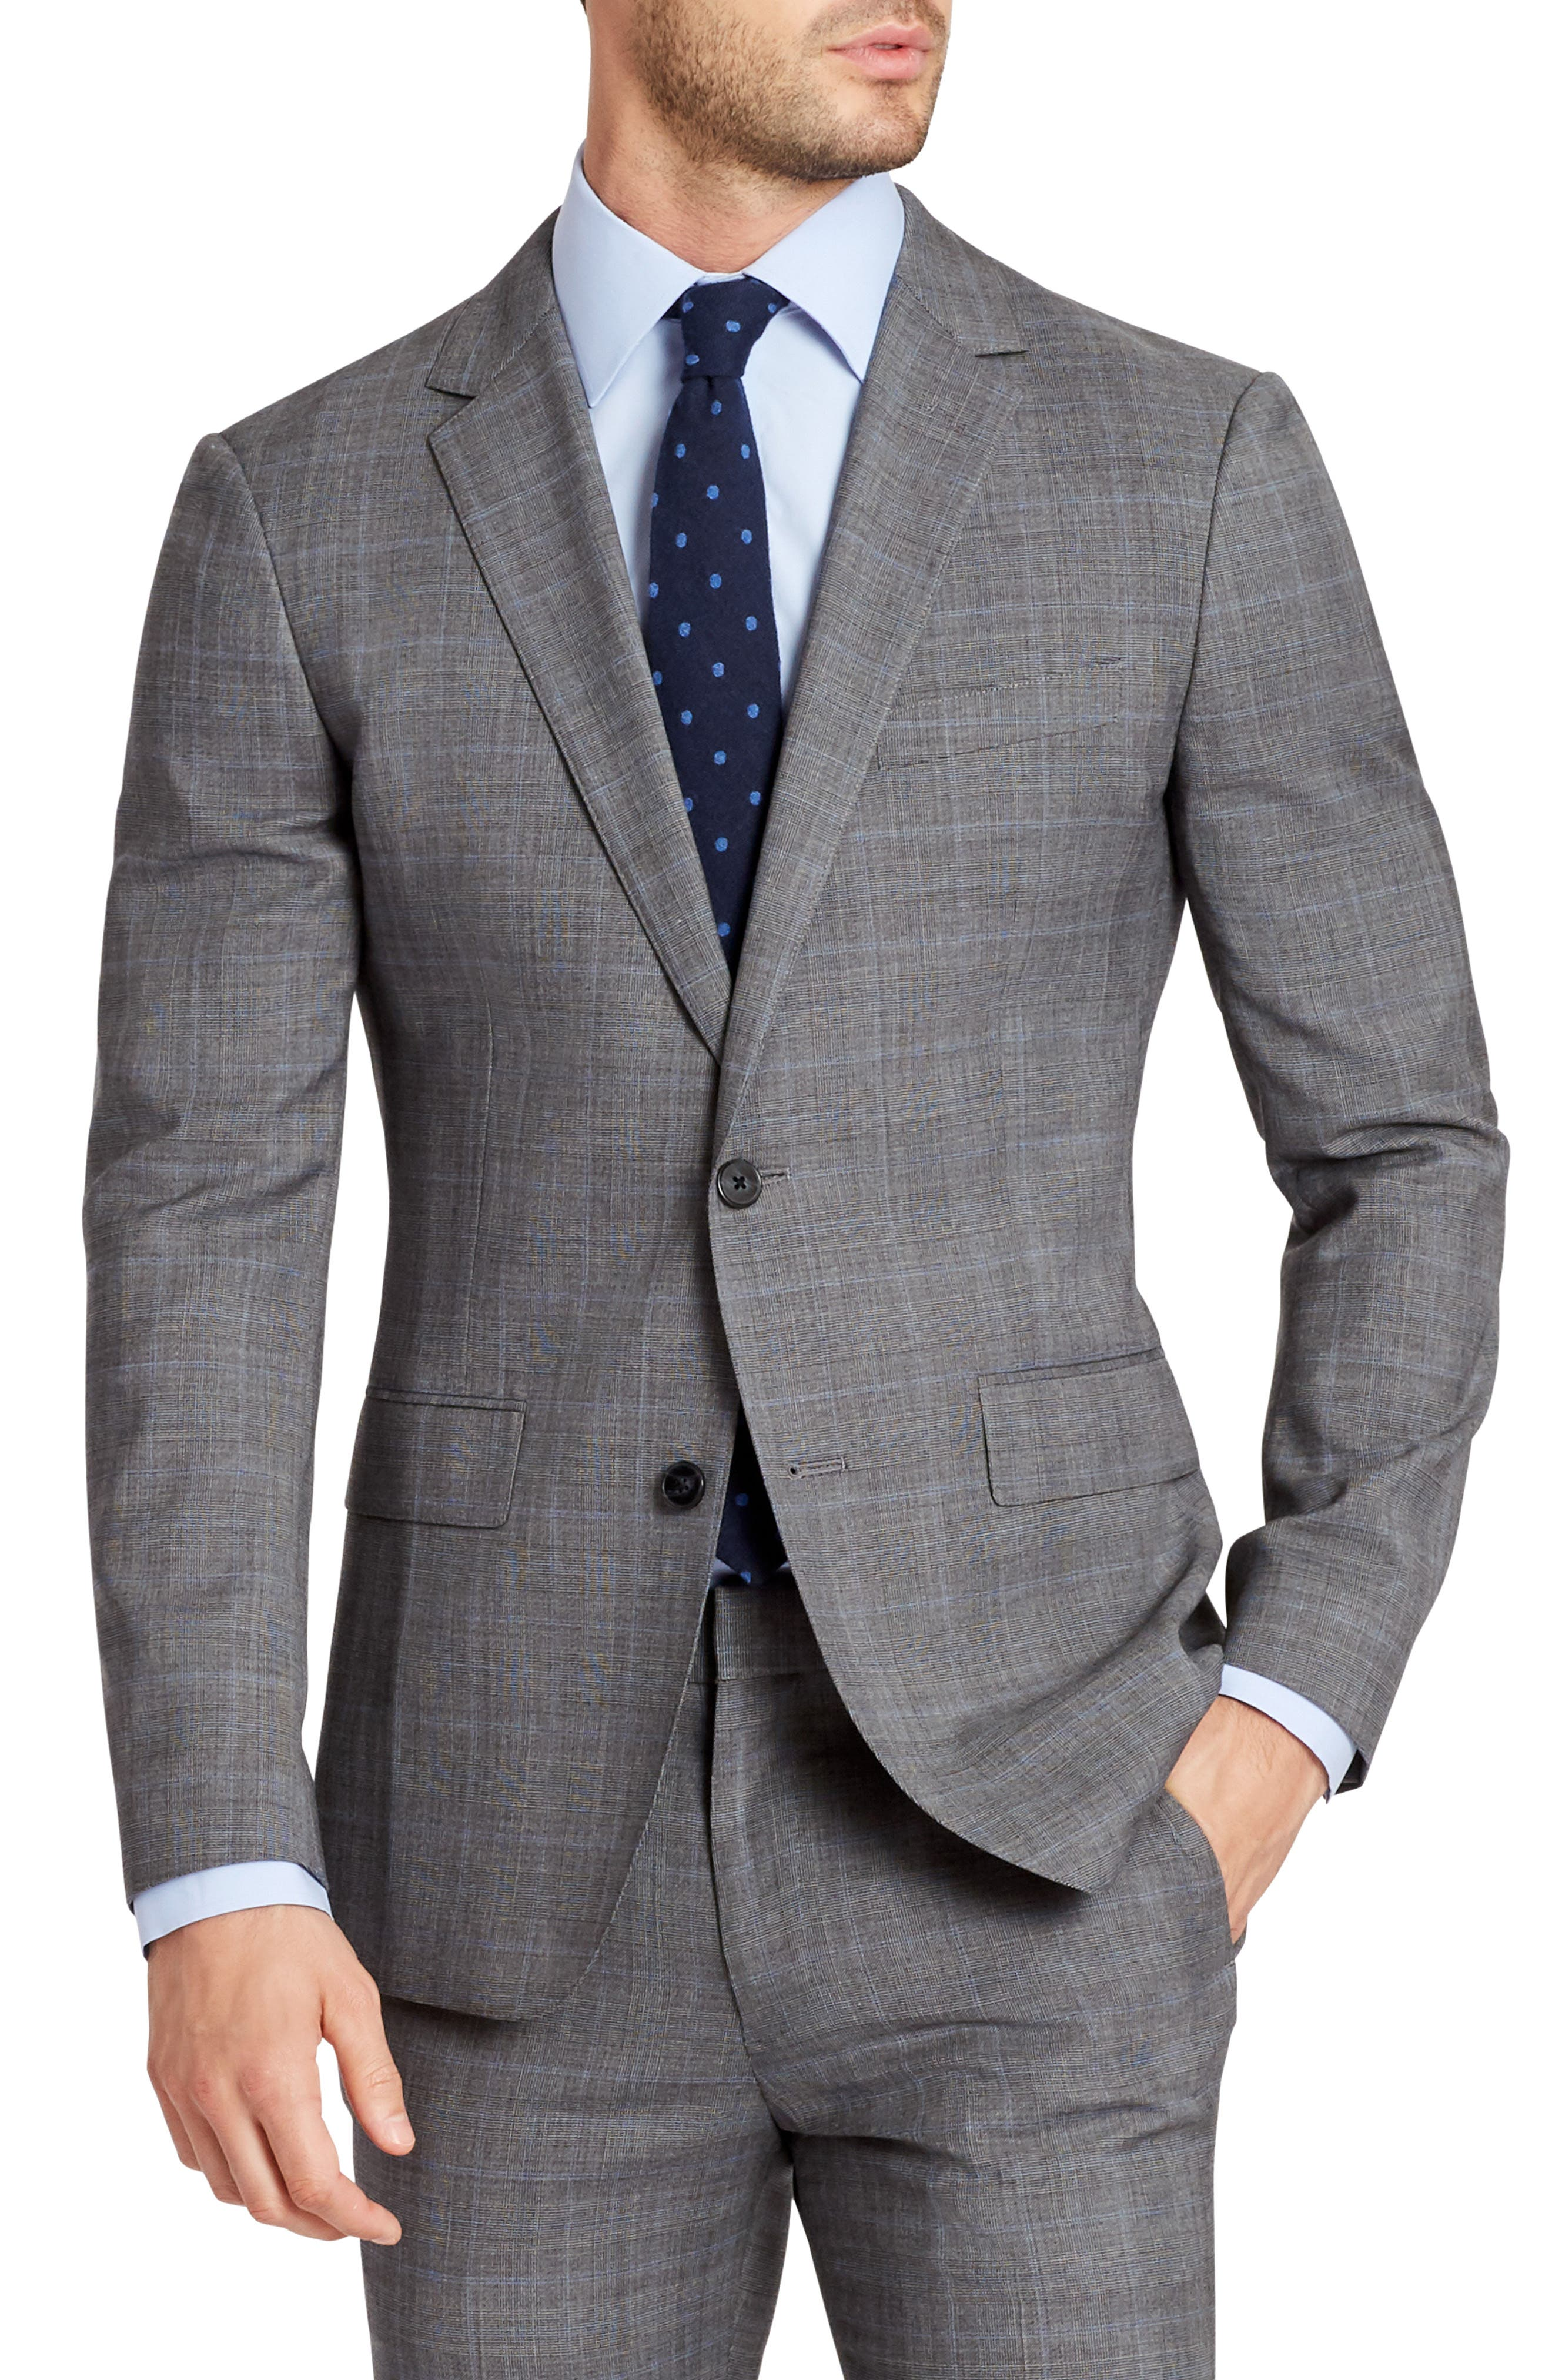 Jetsetter Slim Fit Plaid Stretch Wool Sport Coat,                             Alternate thumbnail 4, color,                             020